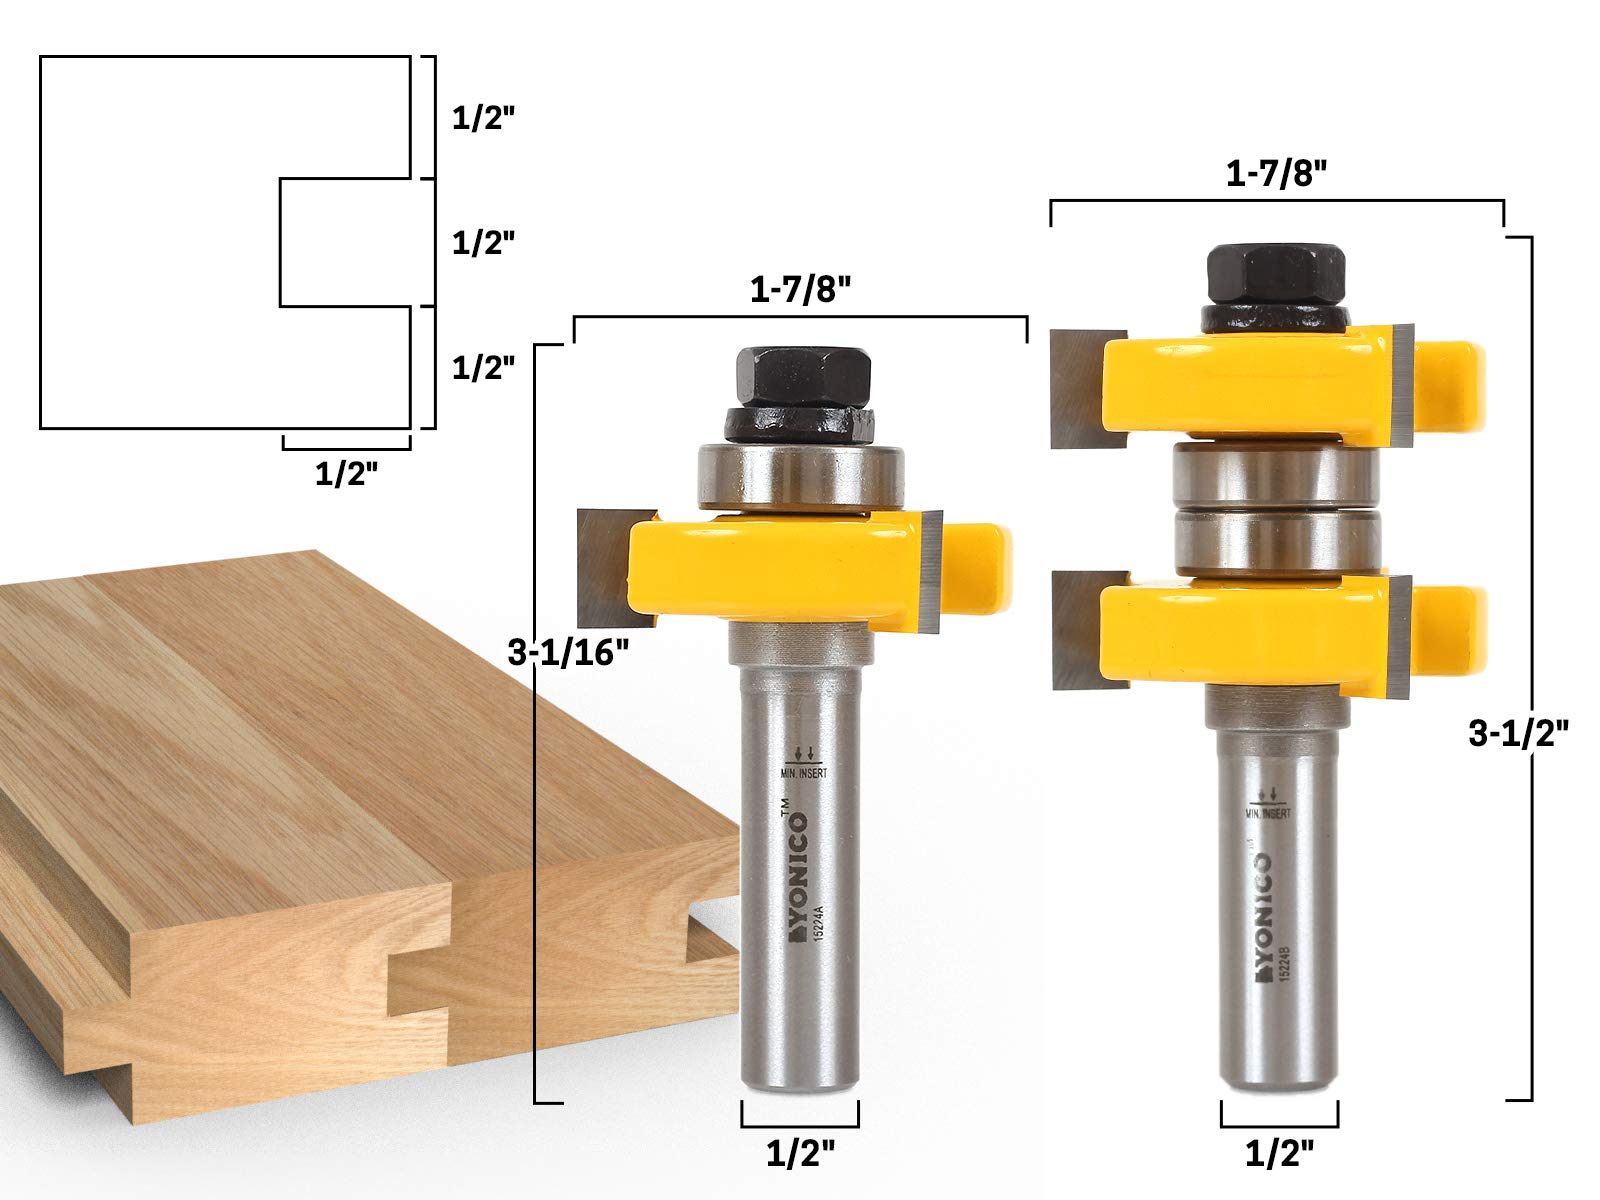 Yonico 15224 1-1/2-Inch 2 Bit Tongue and Groove Router Bit Set 1/2-Inch Shank by Yonico